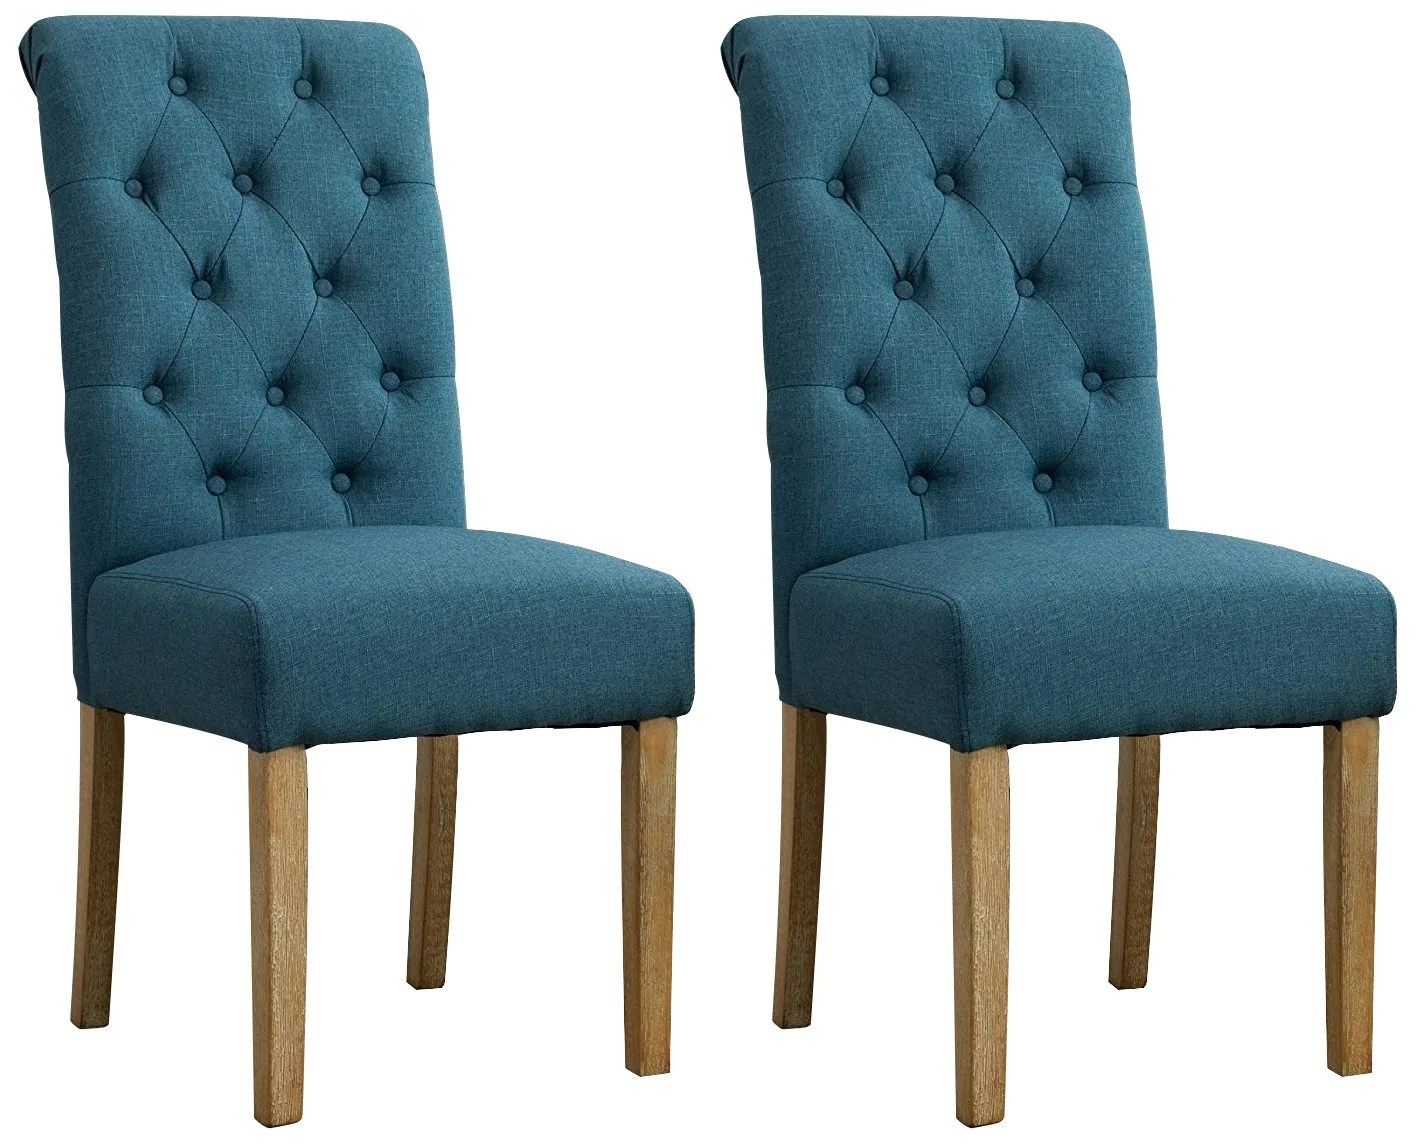 Solid Wood Tufted Parsons Dining Chair Set Of 2